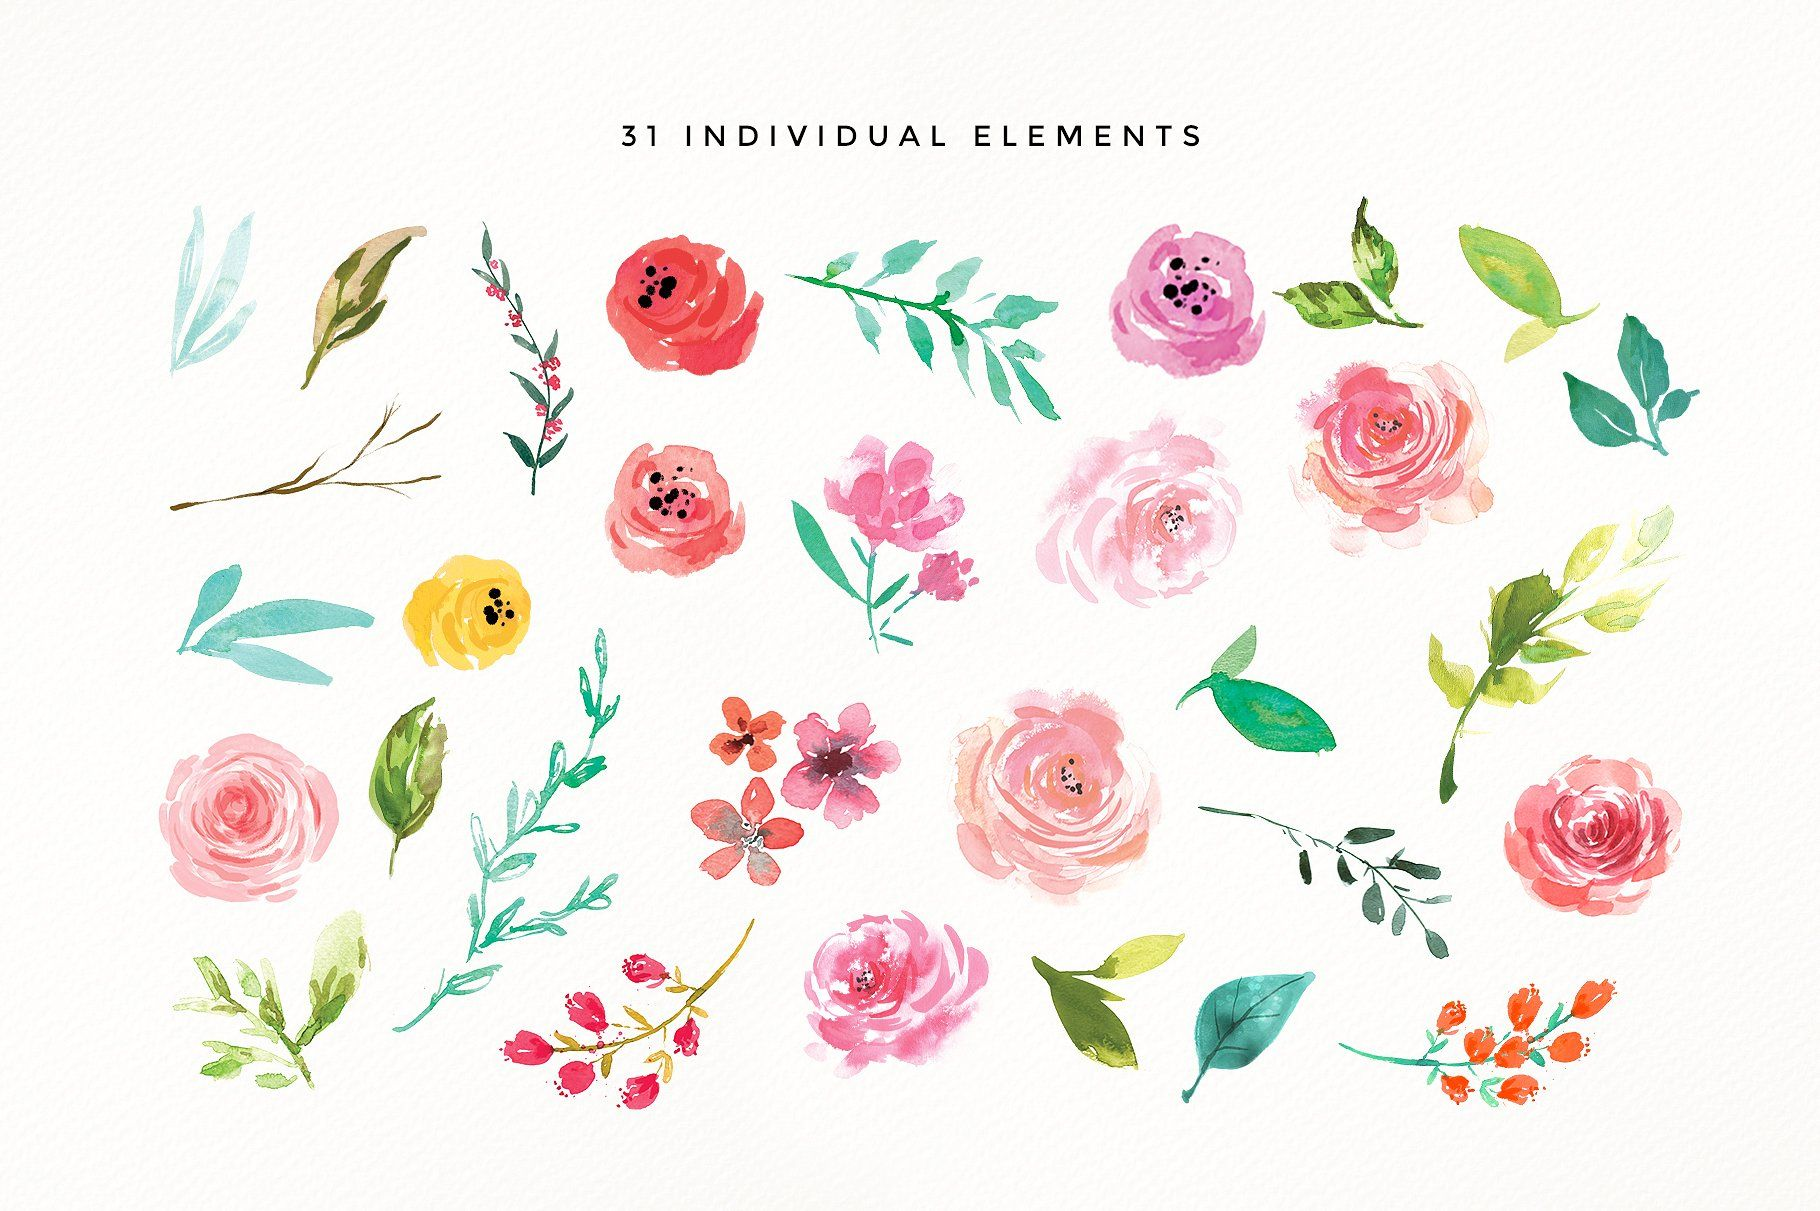 Adele Watercolour Flower Design Set Instagram Template Design